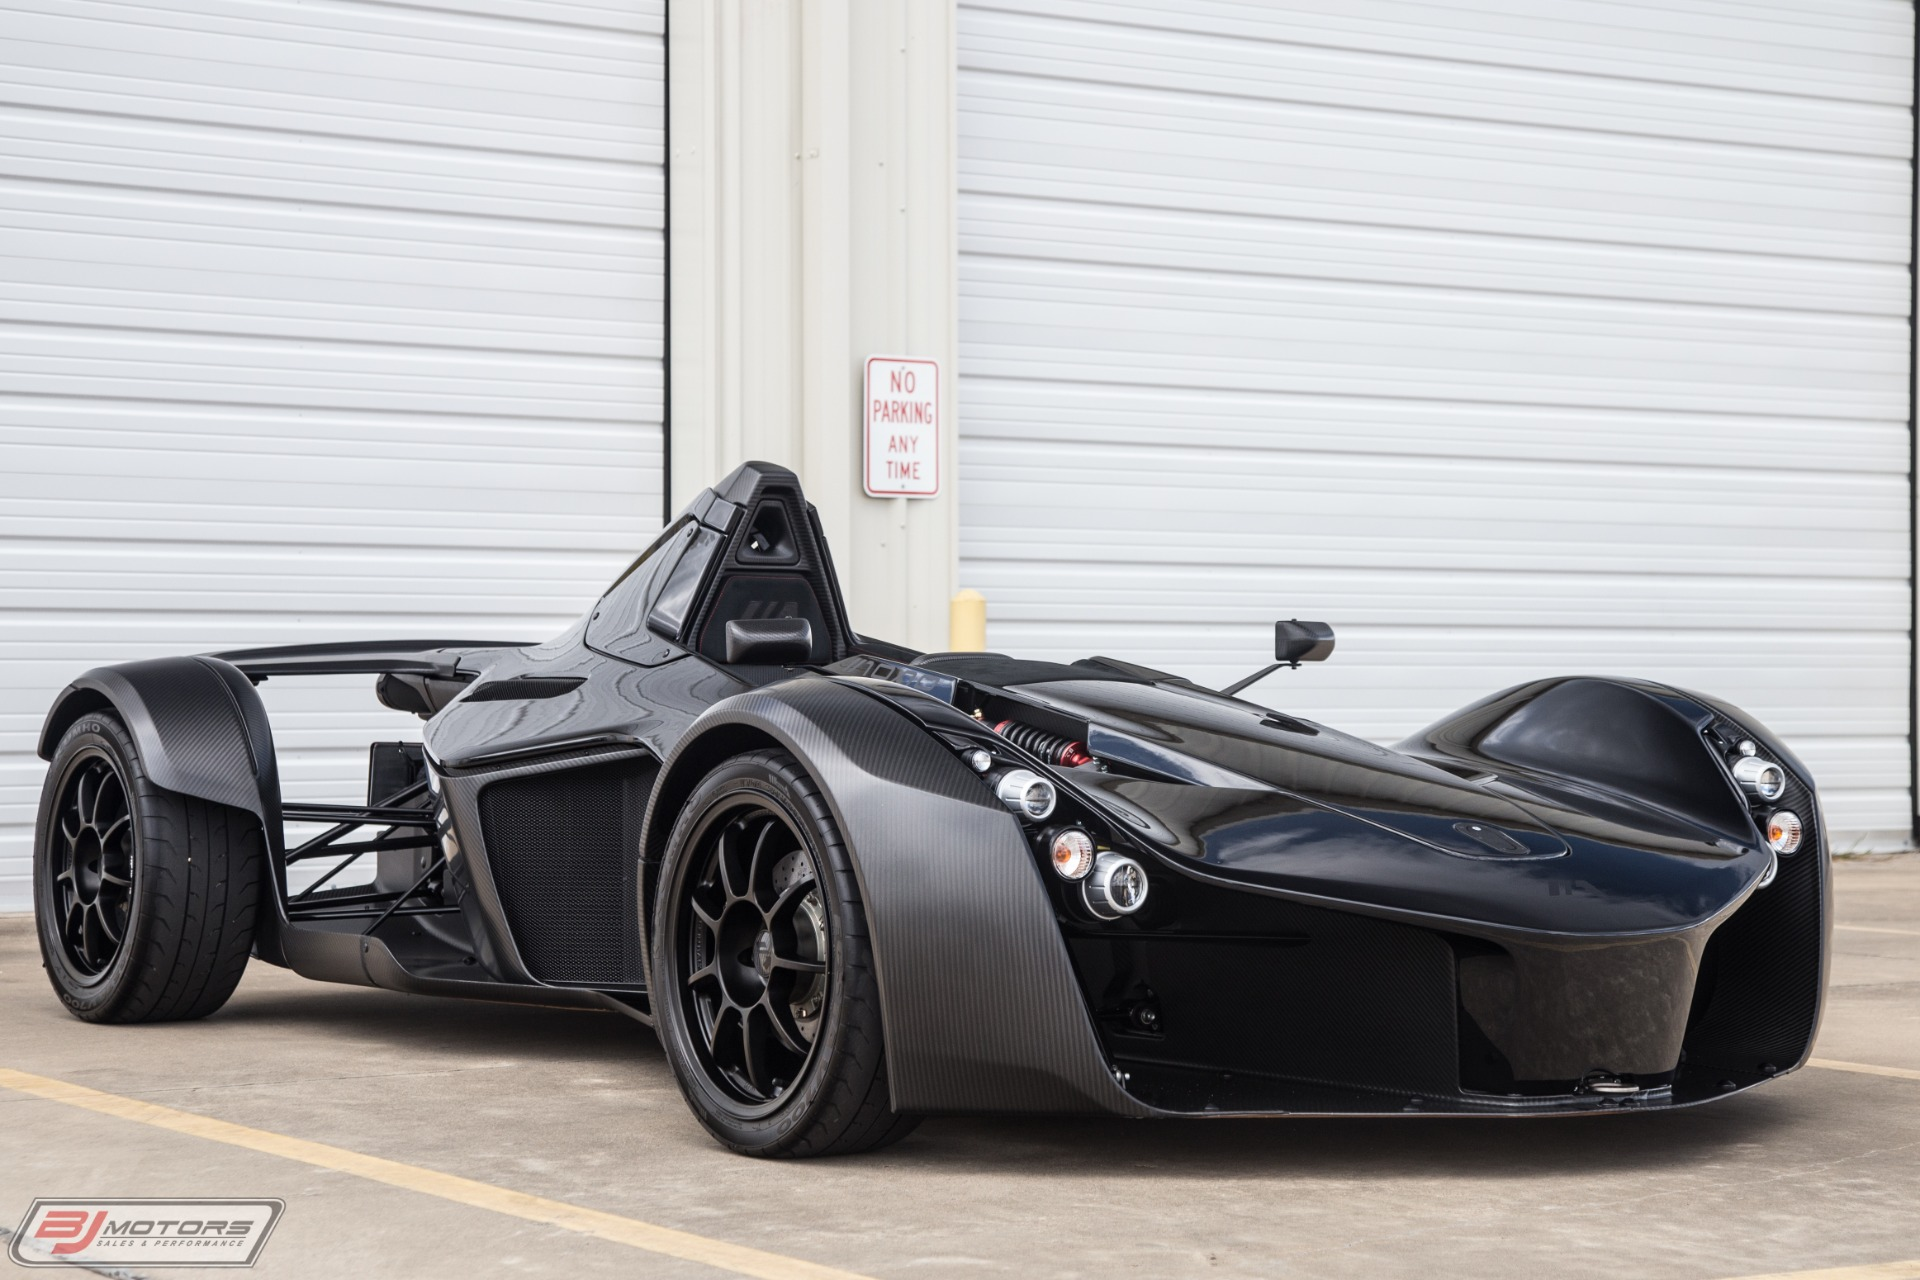 Bac Mono For Sale >> Used 2015 Bac Mono Roadster For Sale 199 995 Bj Motors Stock